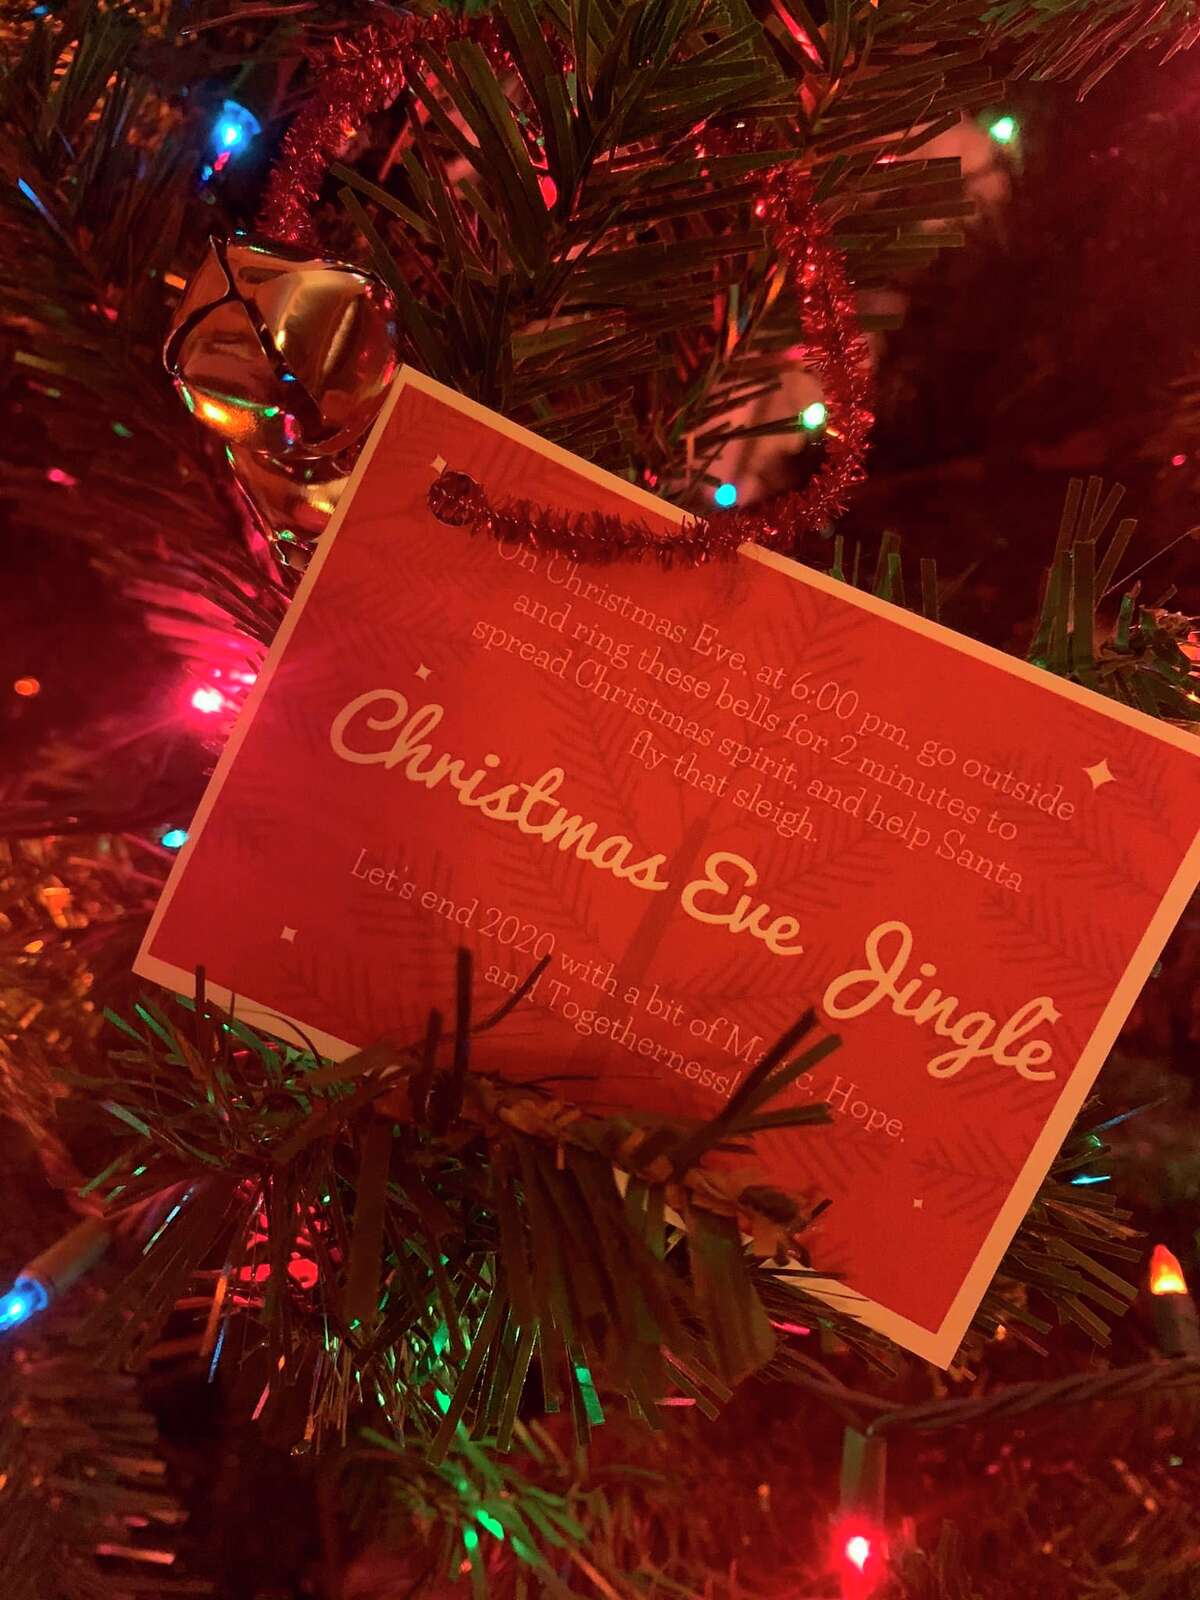 To participate in the Christmas Eve Jingle, families need only set out onto their porch at 6 p.m. on Christmas Eve to ring a bell for 2 minutes. Bells can be picked up at various businesses across the county at no cost. (Courtesy Photo)